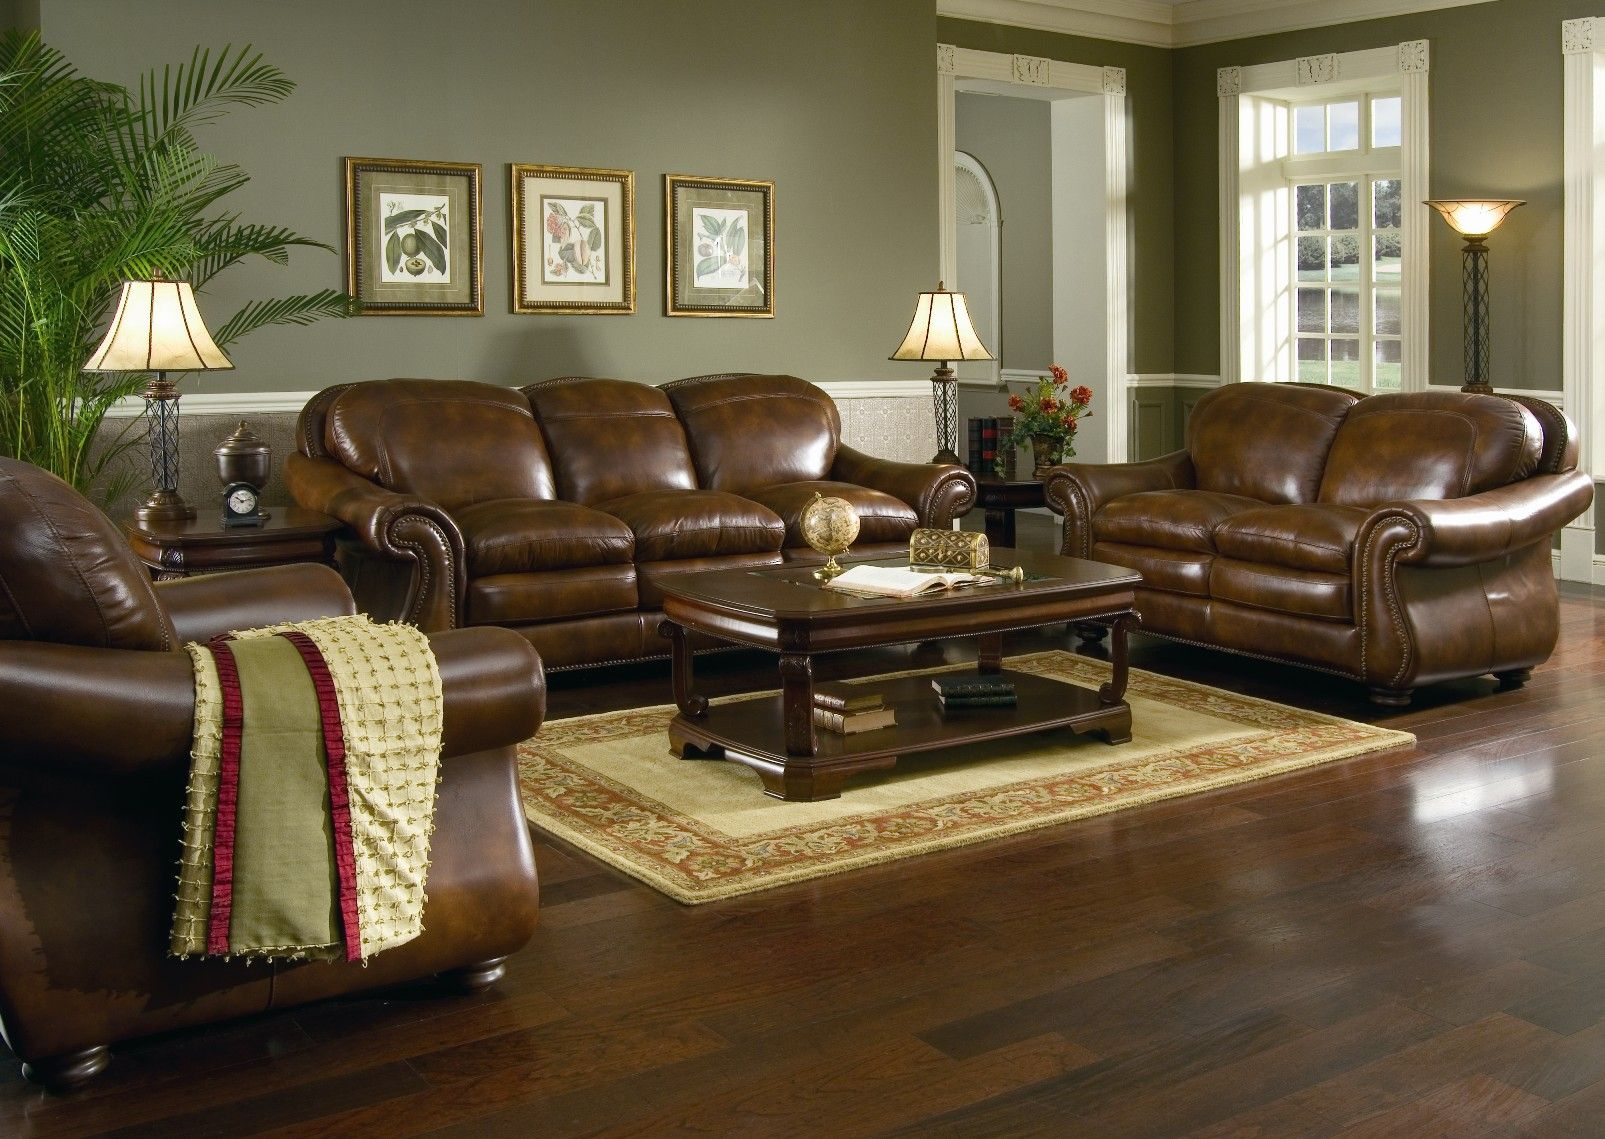 Image result for tropical living room ideas